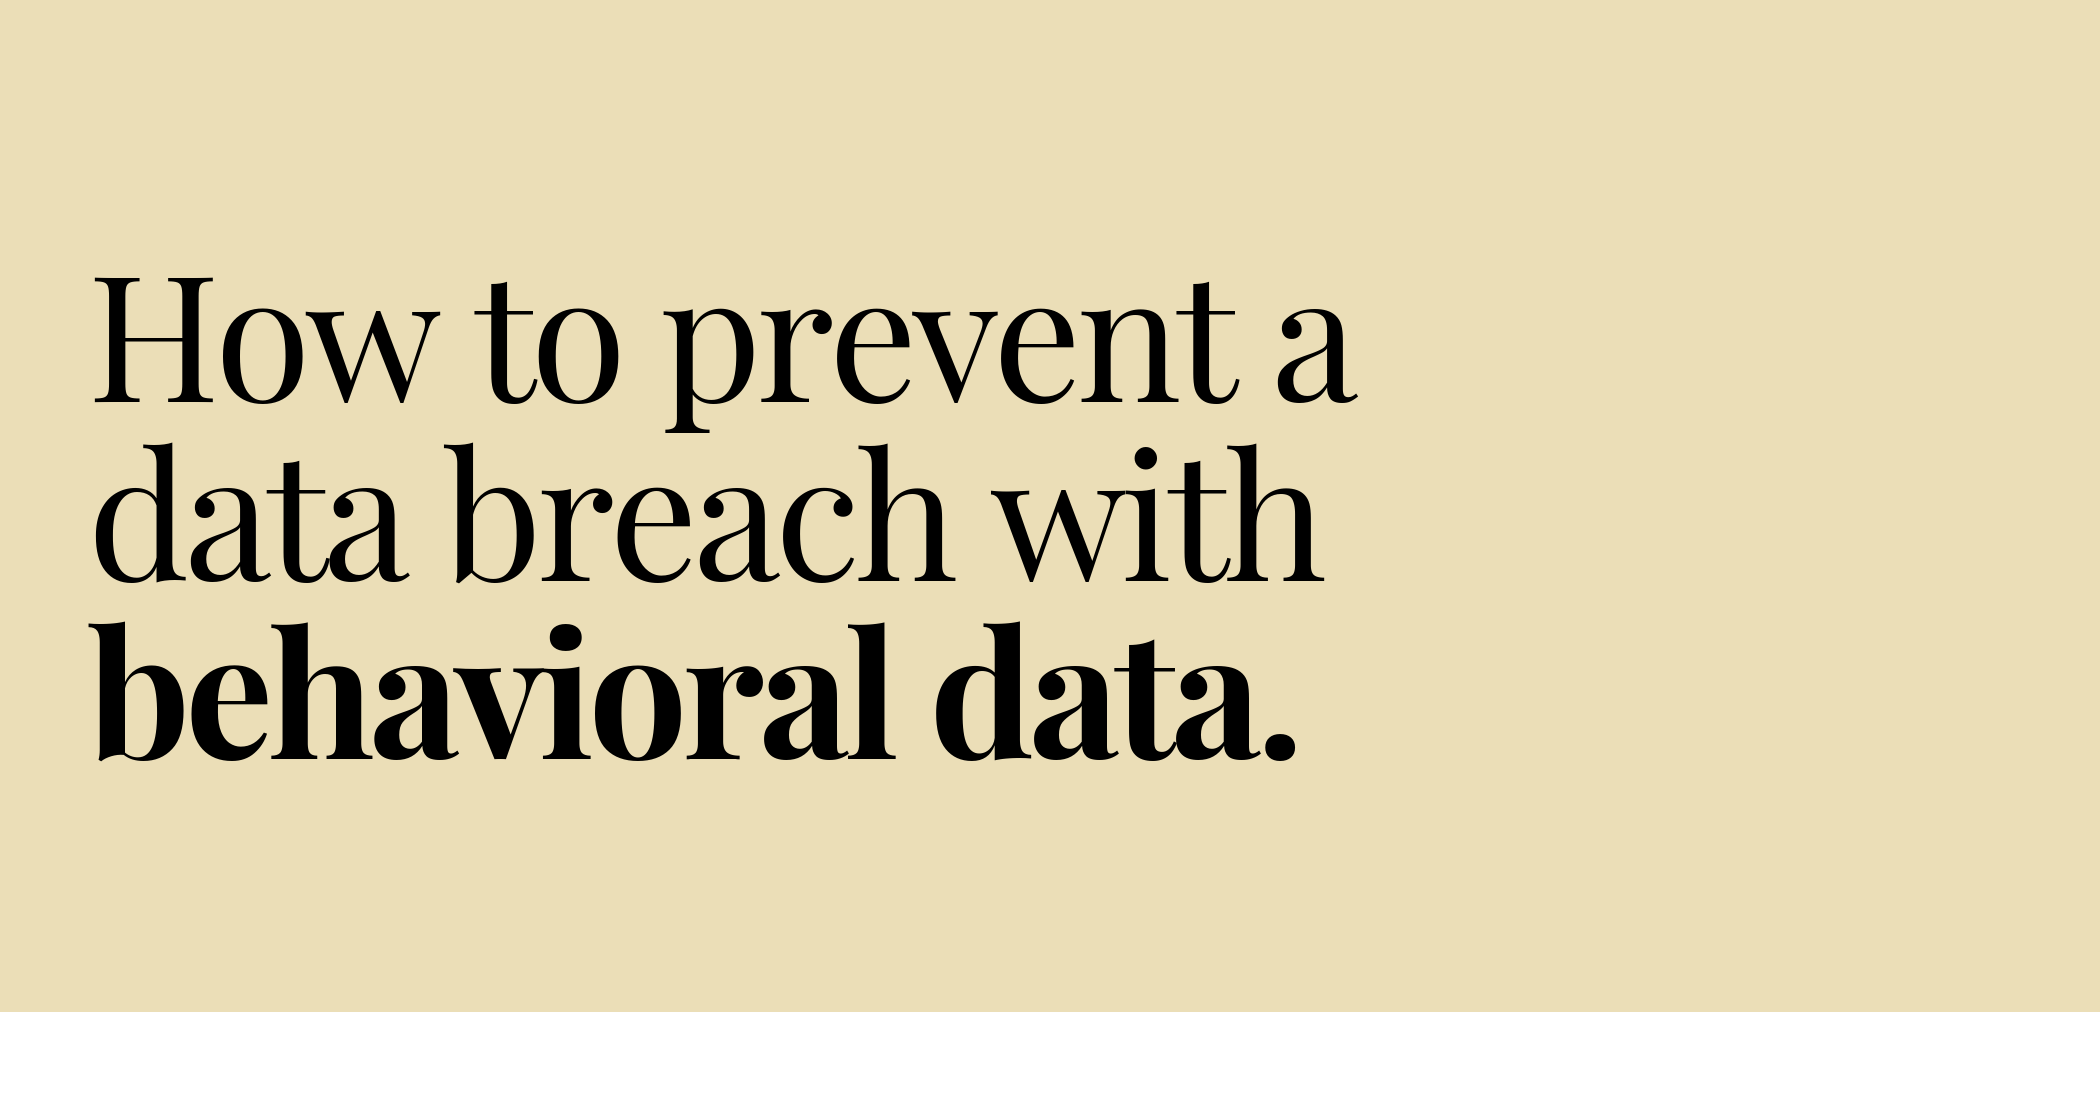 How to prevent a data breach with behavioral data